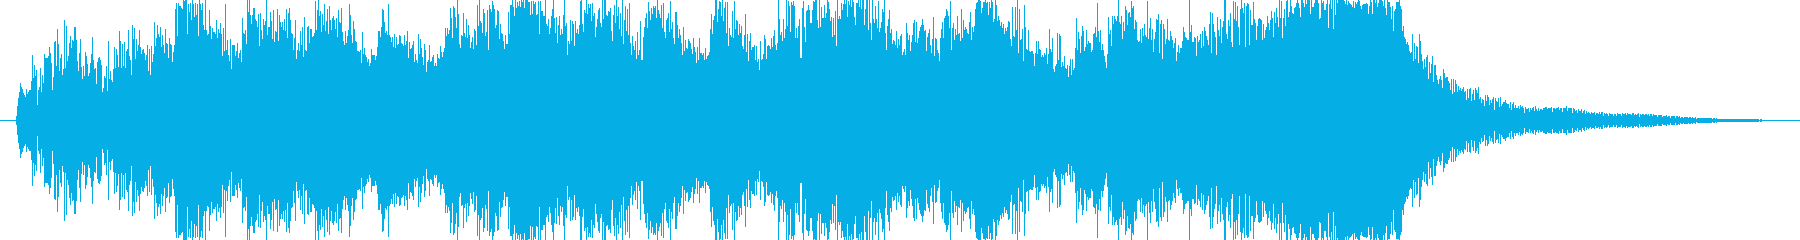 Event opening jingle's reproduced waveform